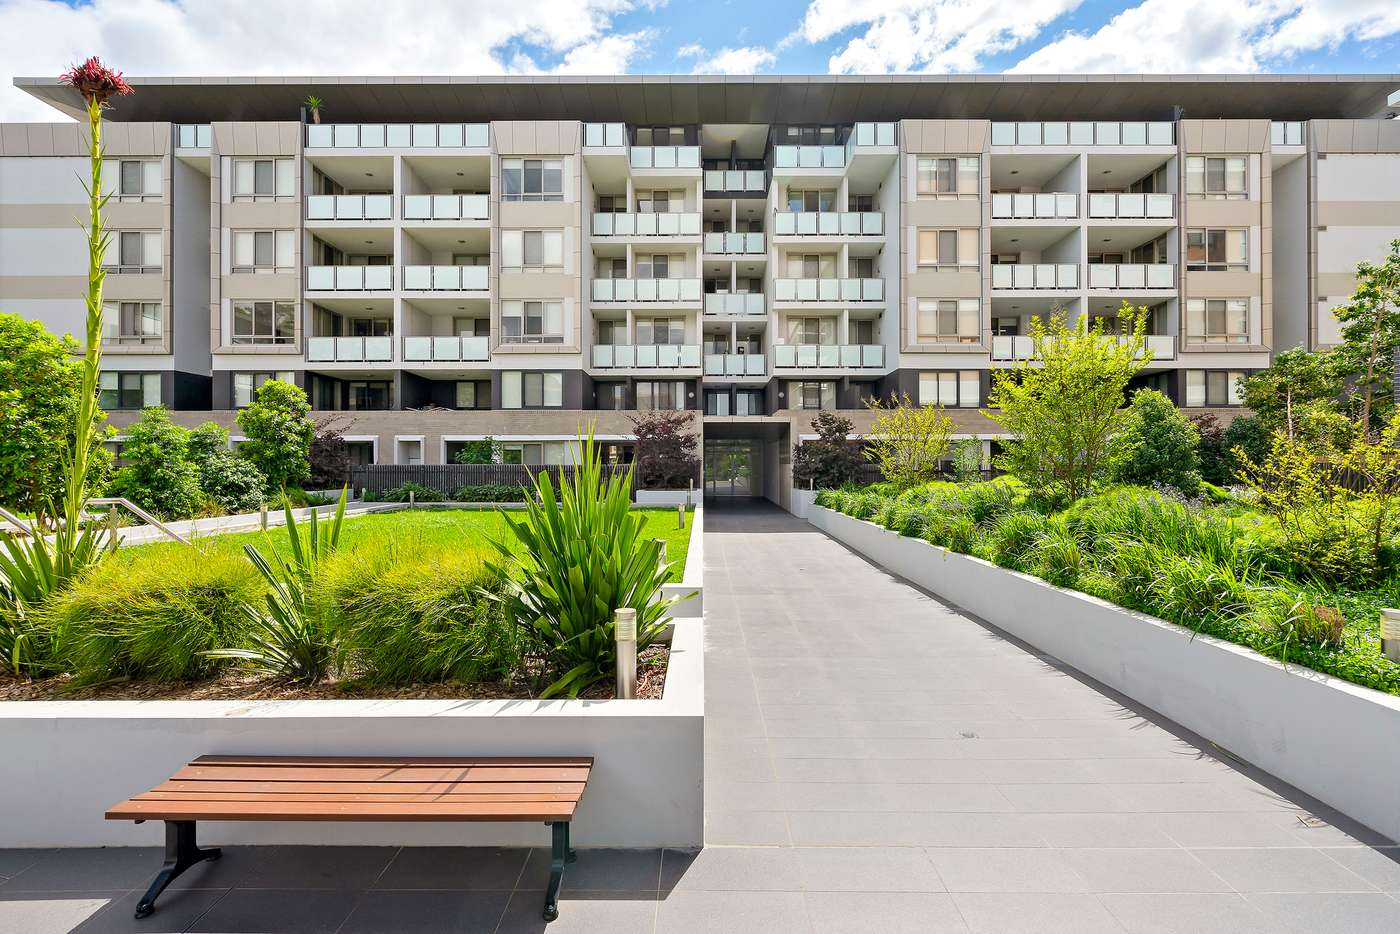 Main view of Homely apartment listing, 2101/1A Morton Street, Parramatta NSW 2150